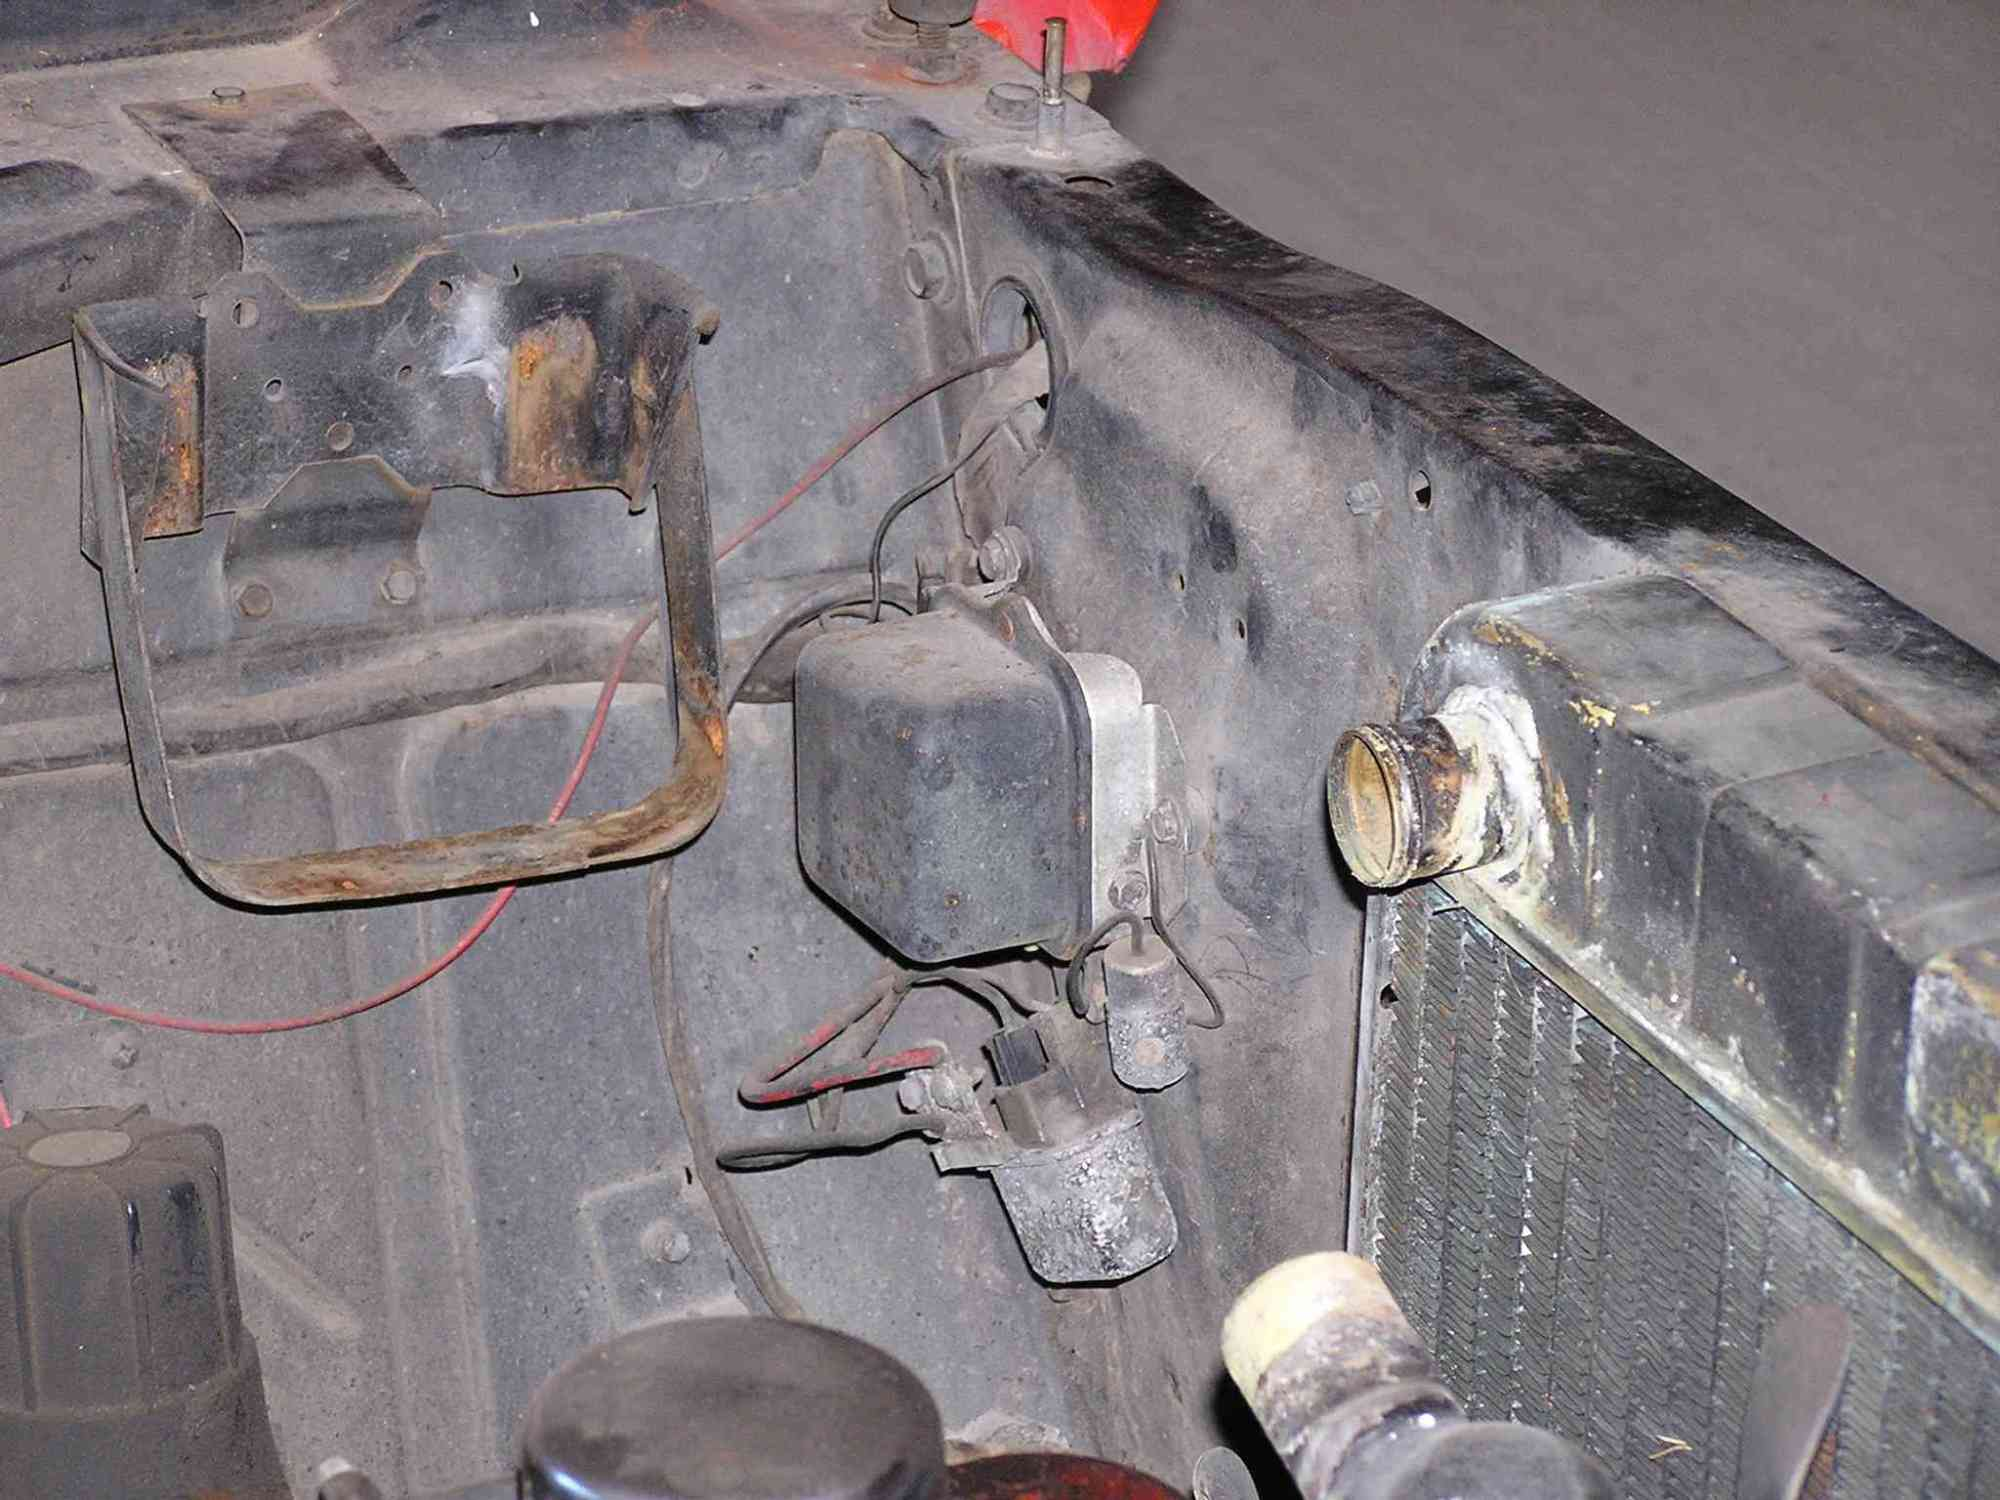 hight resolution of camaro horn relay wiring likewise 1967 chevelle horn relay wiring on 68 impala horn relay wiring diagram